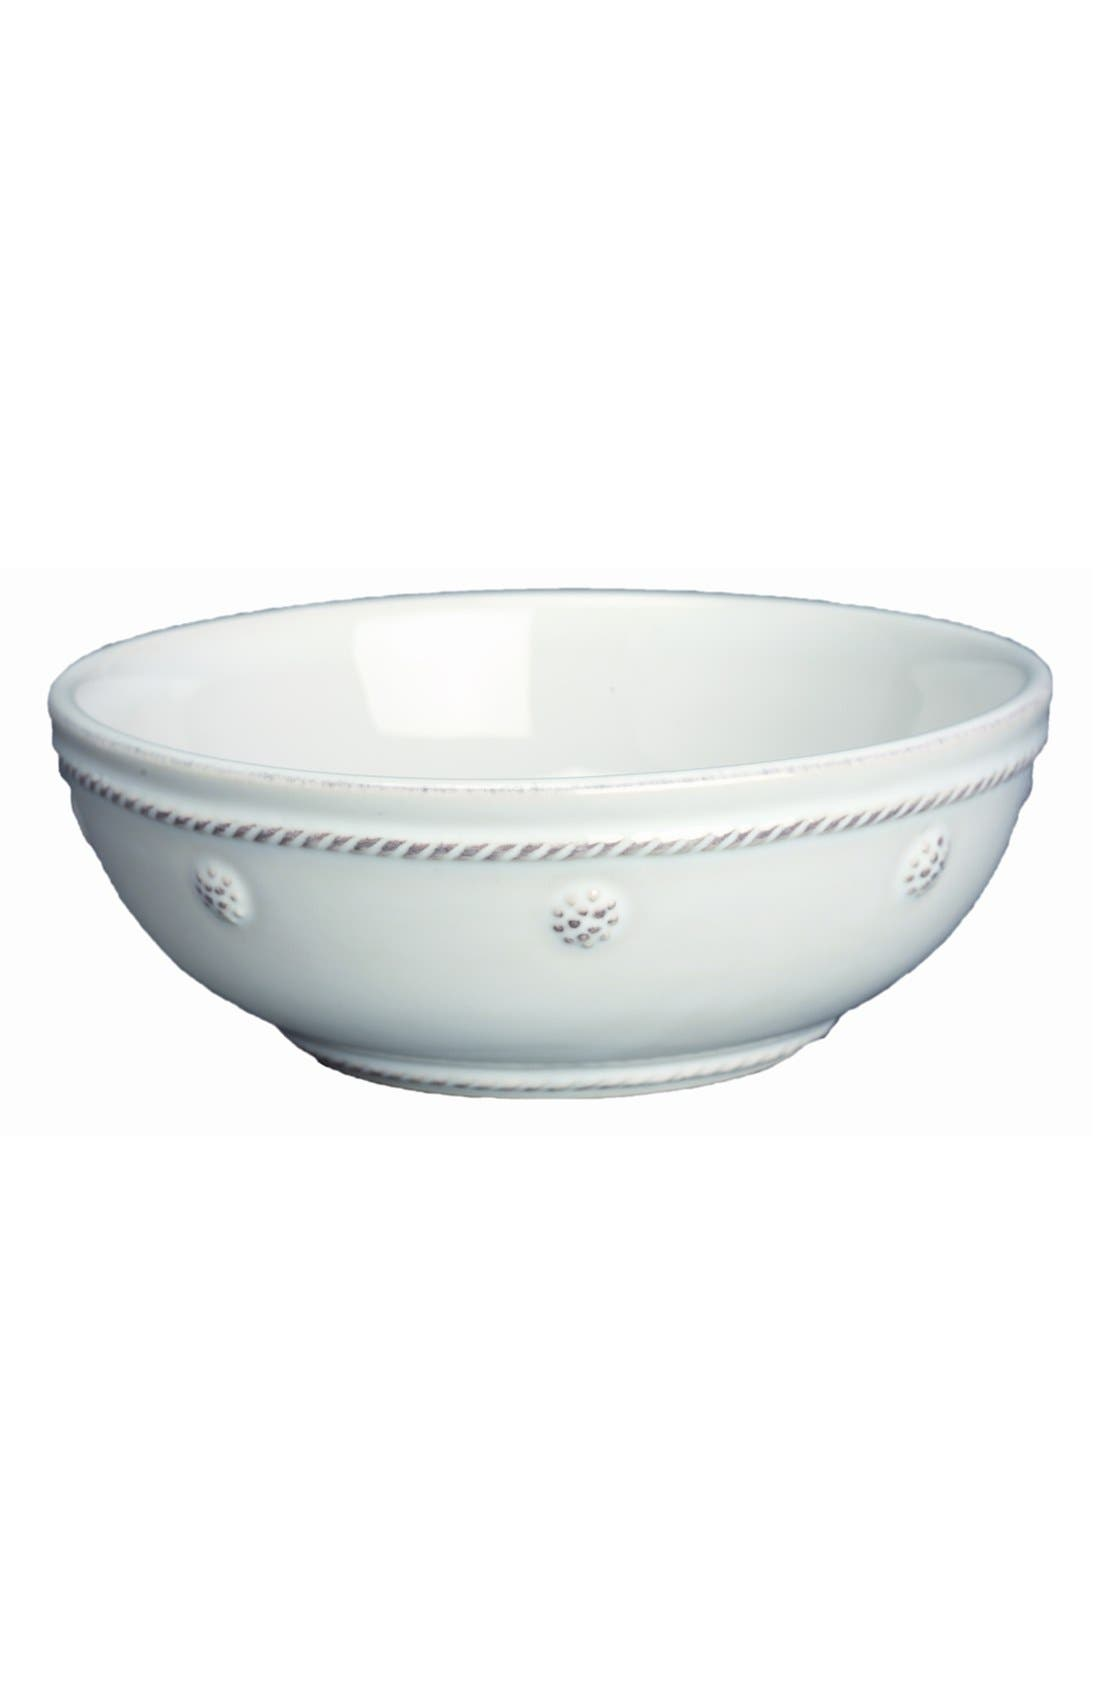 Juliska 'Berry and Thread' Coupe Bowl